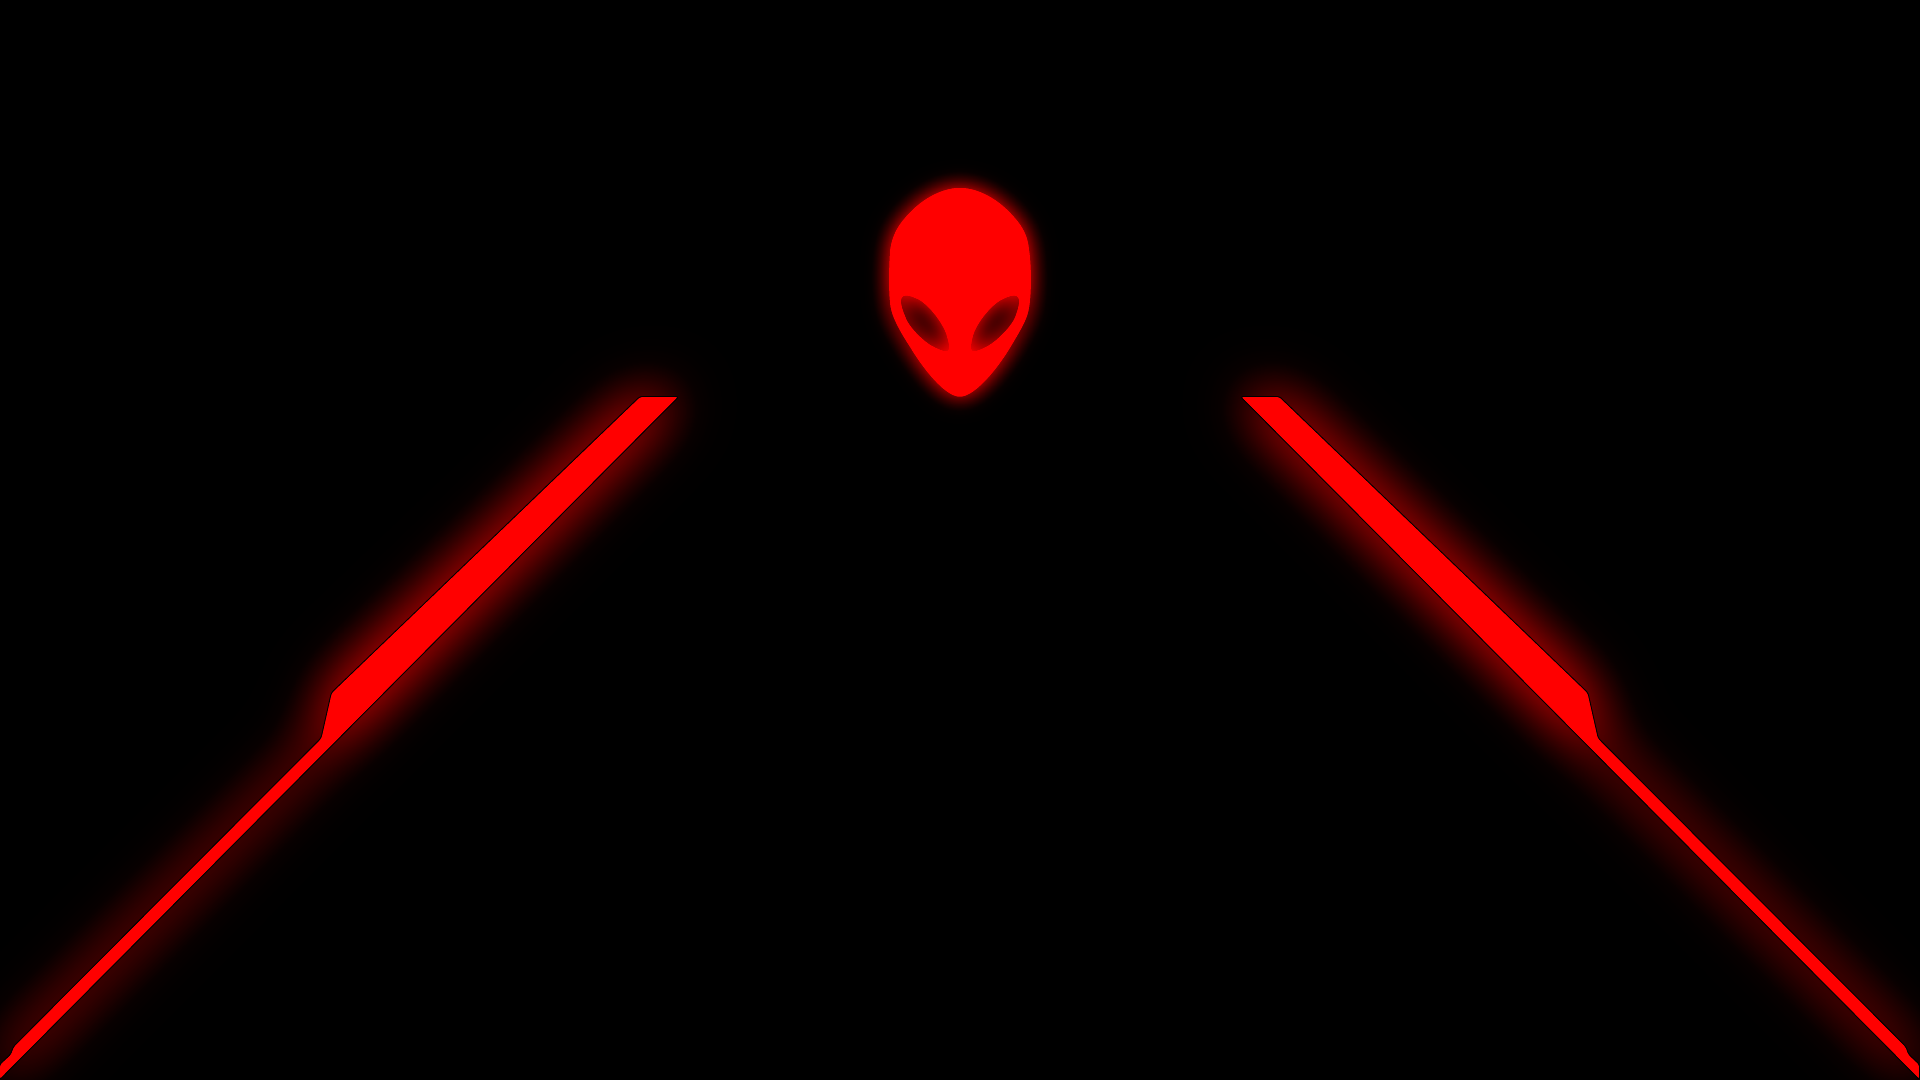 alienware computer widescreen wallpaper 280